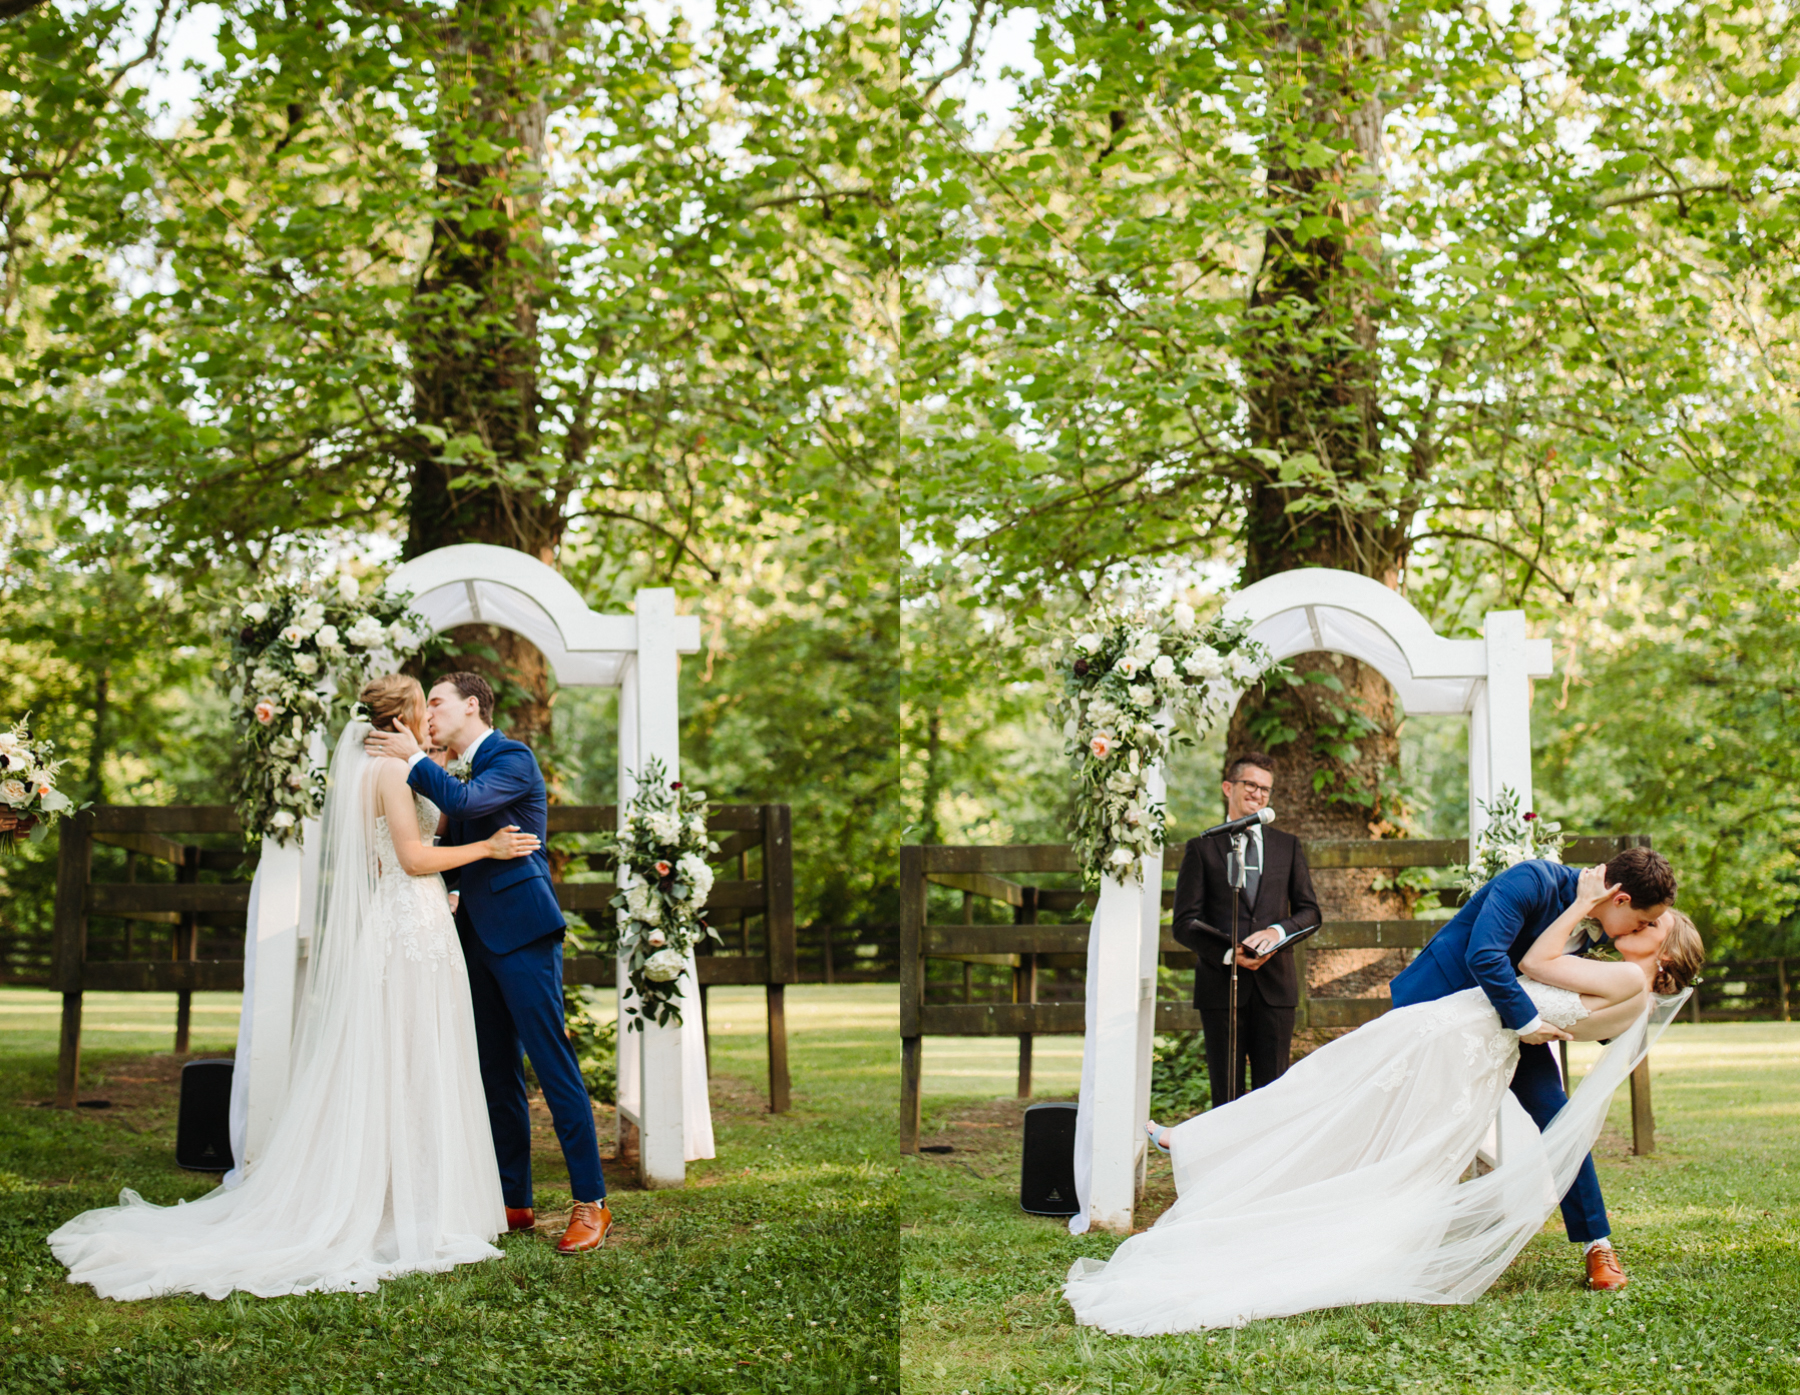 The first kiss as husband and wife at a stables at strawberry creek wedding in knoxville, tennessee